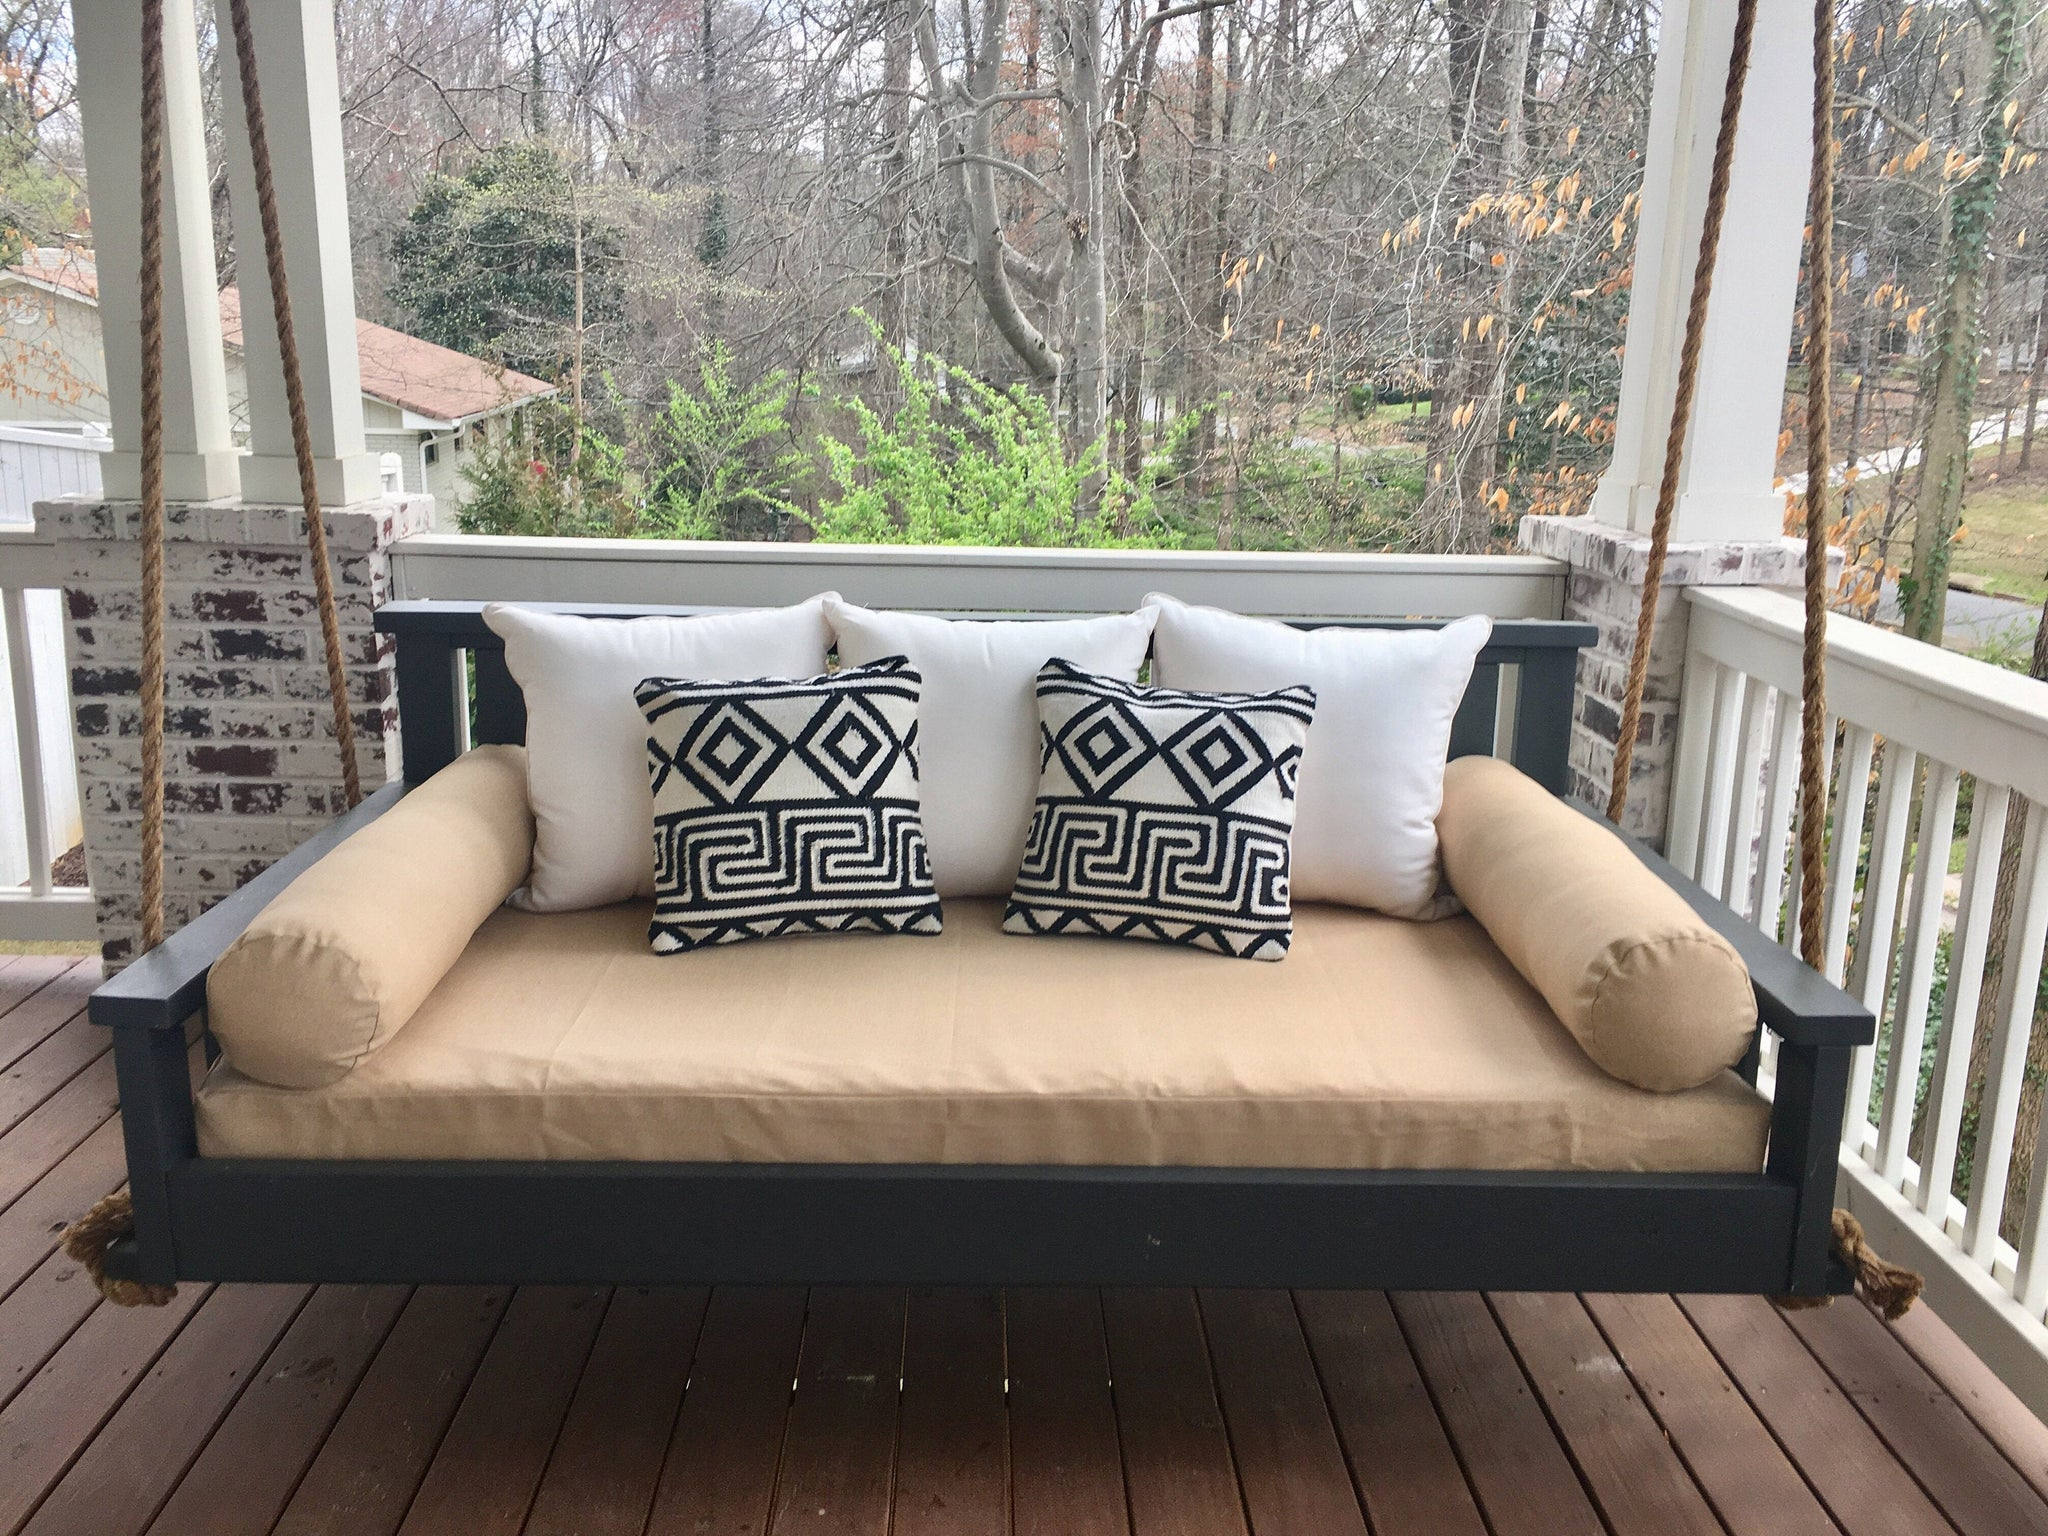 Beige Daybed Cover Mattress Cover Mattress Cover Indoor Outdoor Tan Ma Jll Home